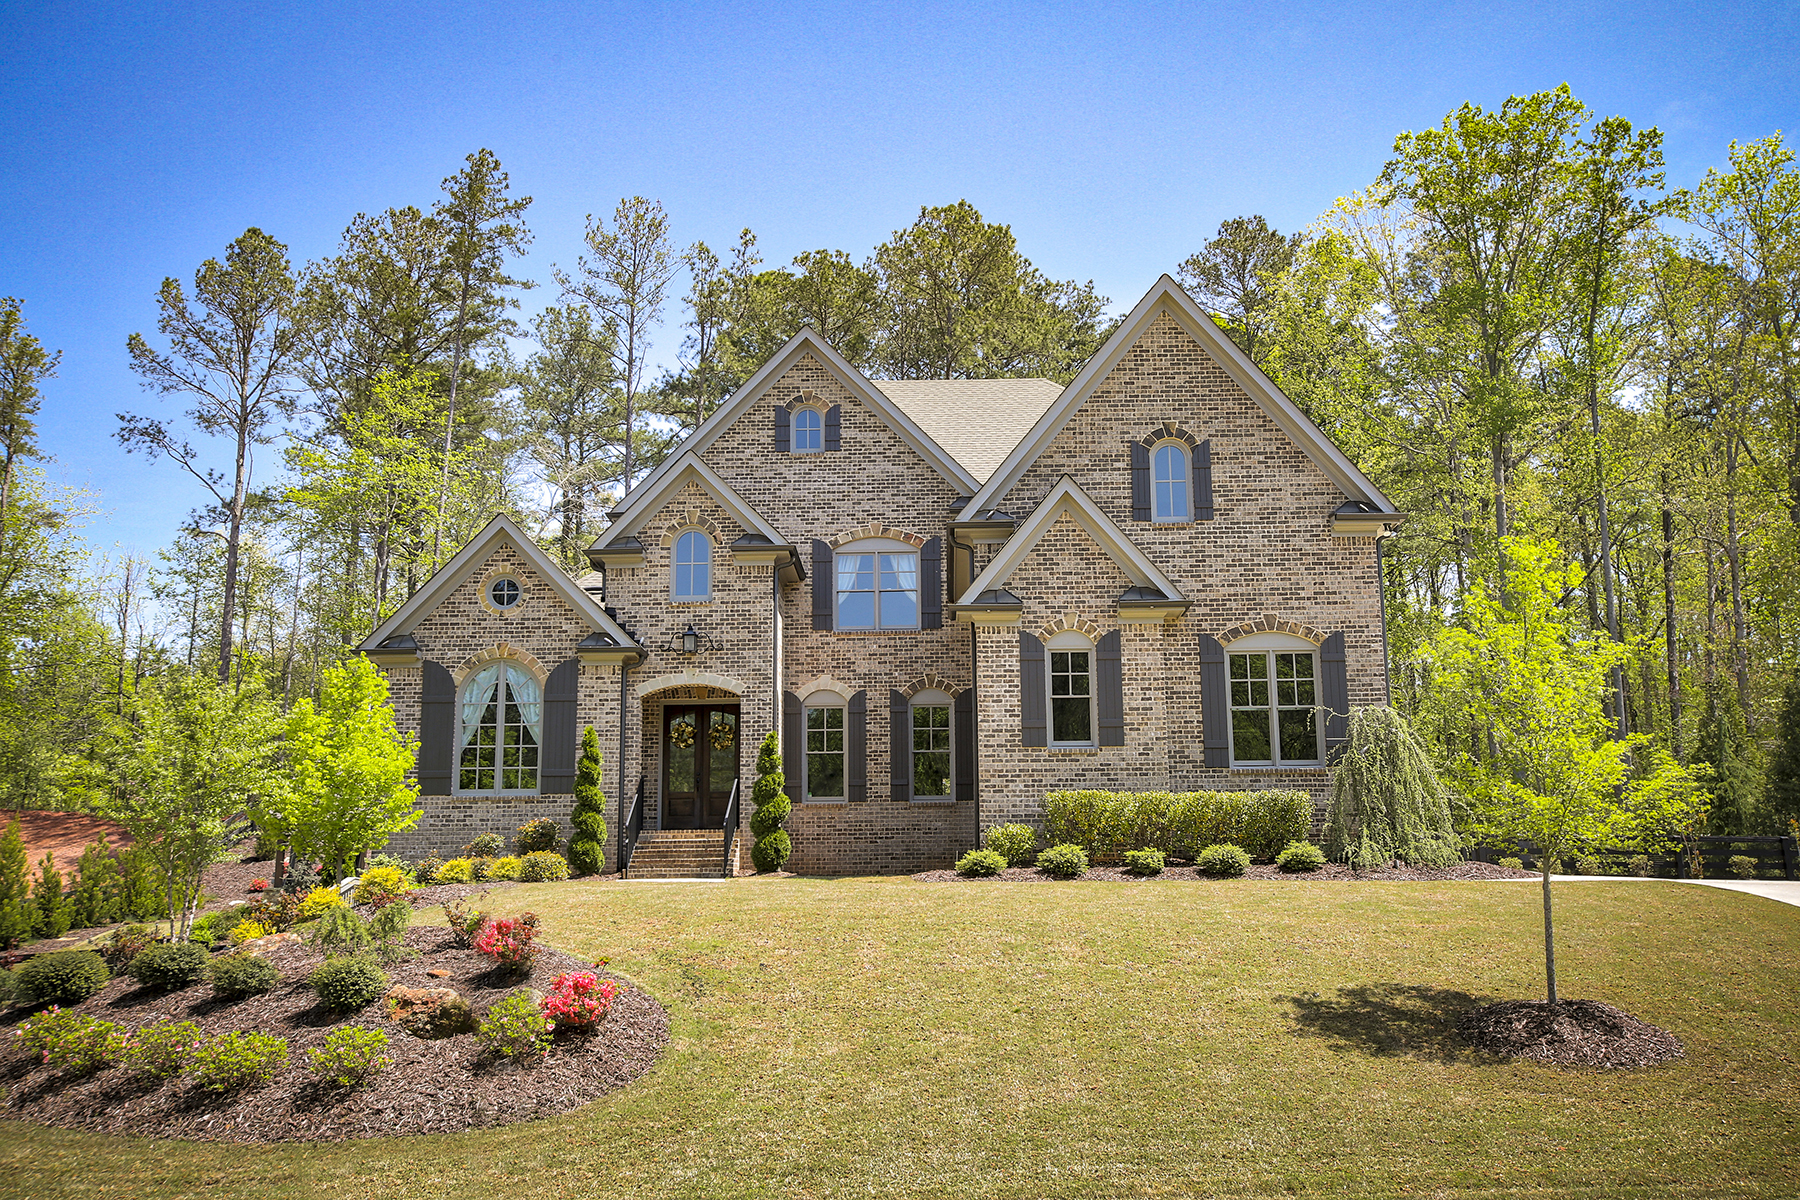 Single Family Home for Sale at Enjoy your Private Oasis in Kingsley Estates 16855 Quayside Dr Milton, Georgia 30004 United States